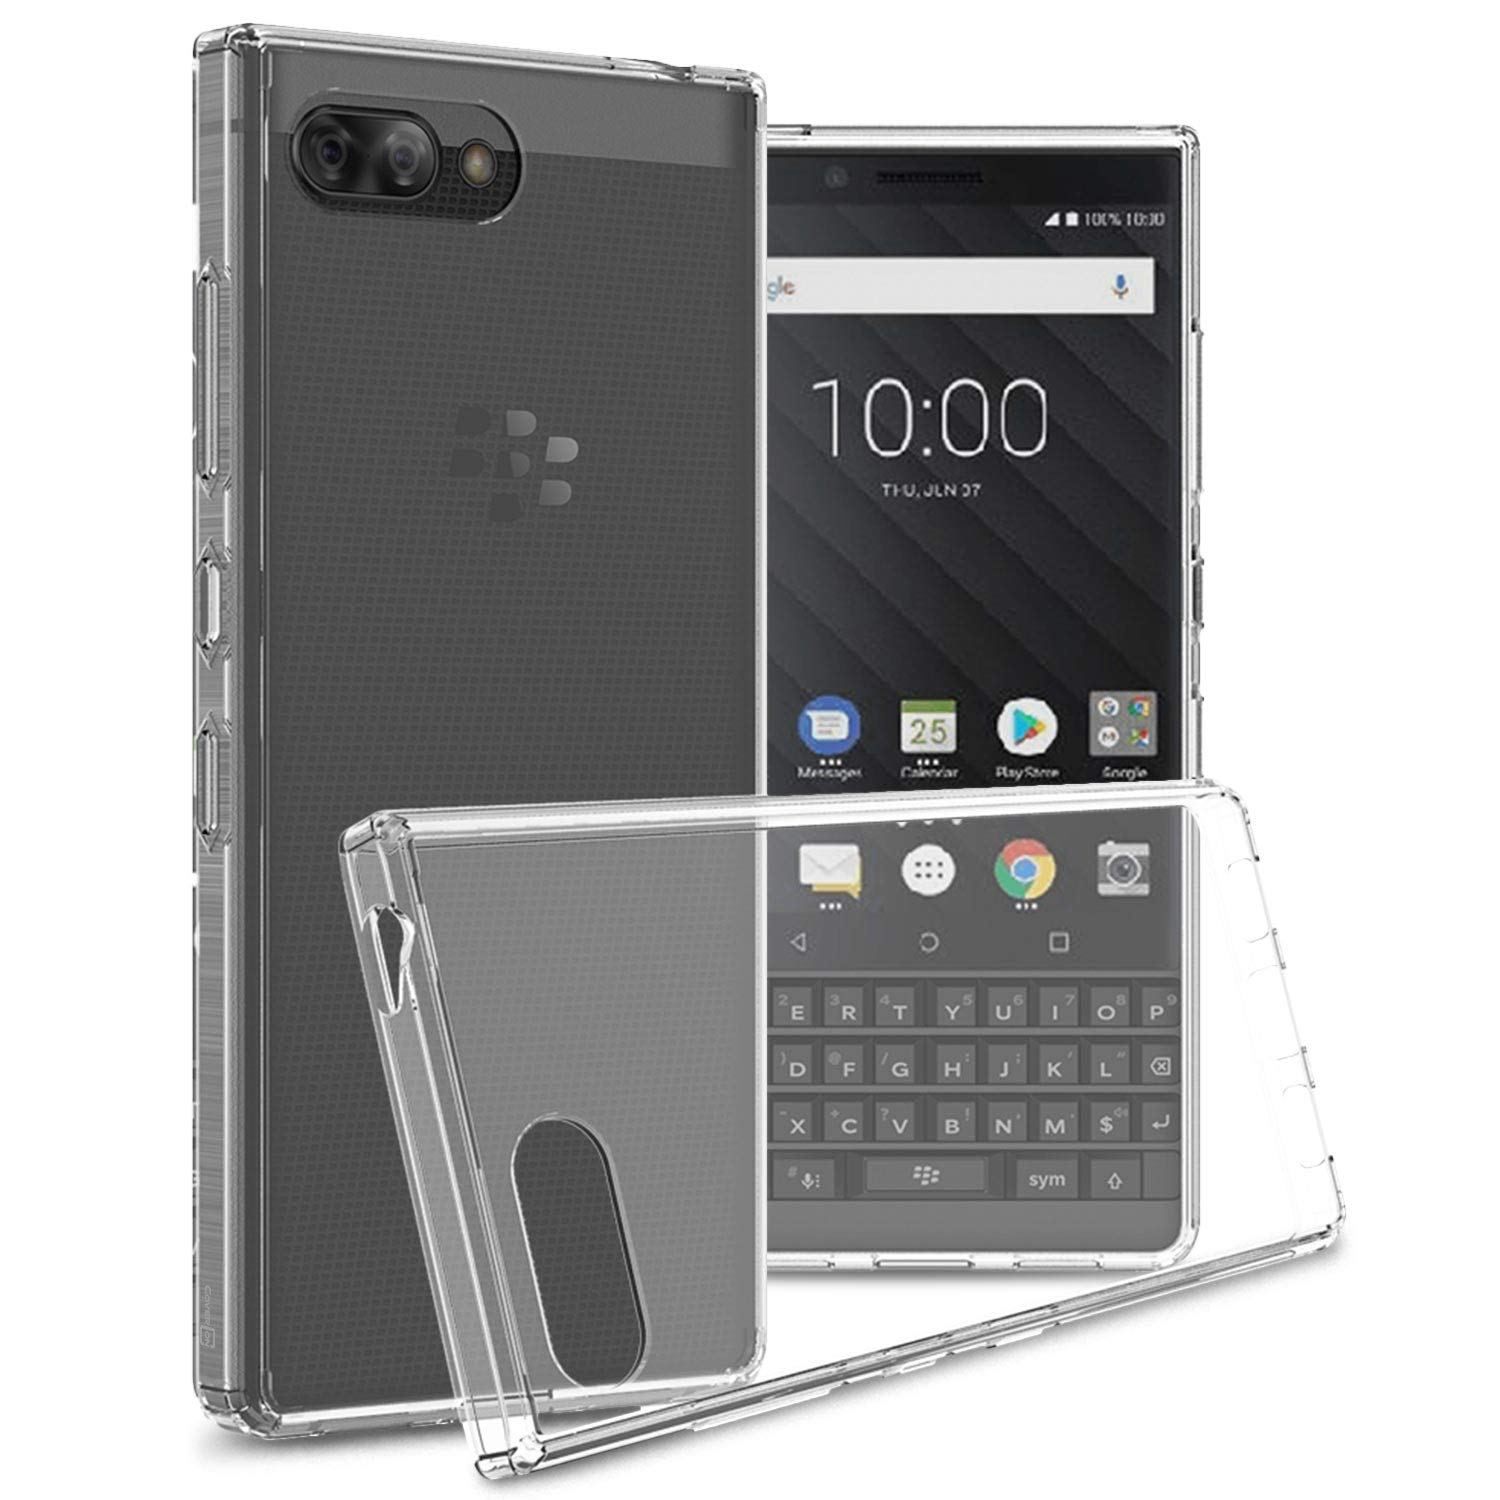 huge selection of ae09d 2da48 CoverON [ClearGuard Series] For Blackberry KEY2 Clear Case, Slim Fit Phone  Cover with Clear Hard Back and TPU Bumpers for Blackberry KEY2 - Clear